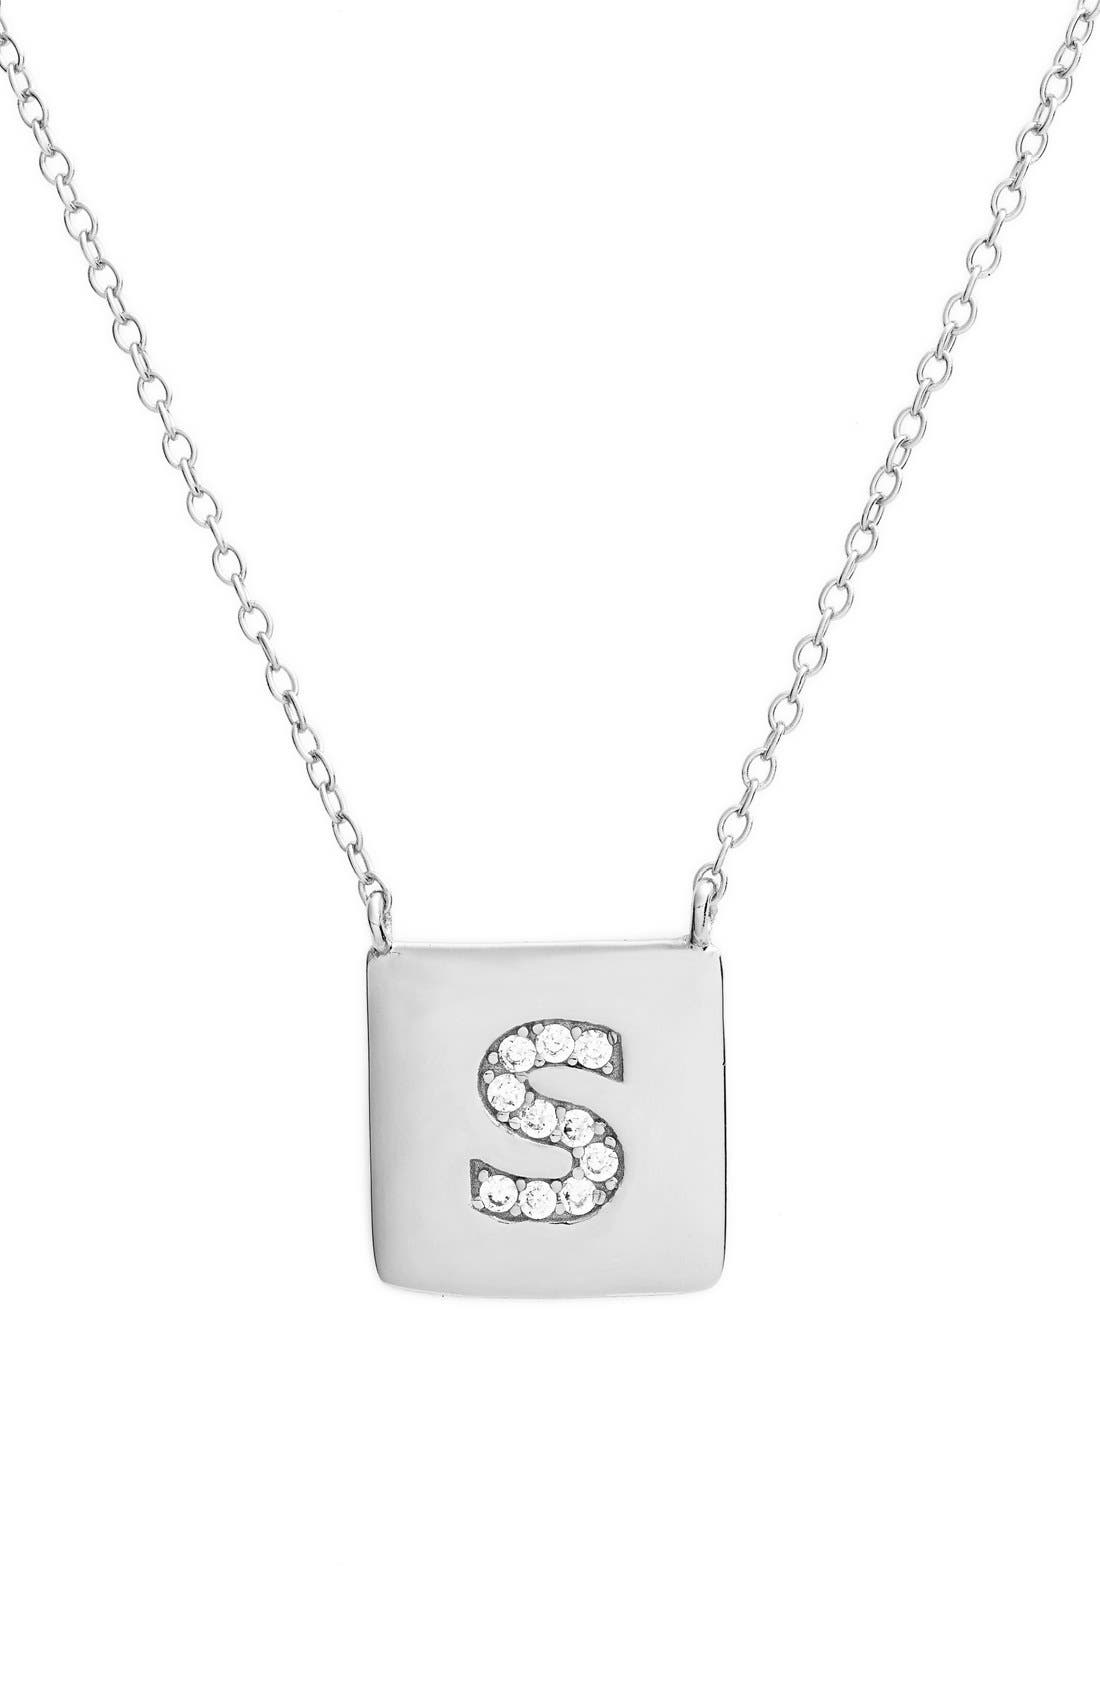 Alternate Image 1 Selected - Argento Vivo Cubic Zirconia Initial Pendant Necklace (Nordstrom Online Exclusive)